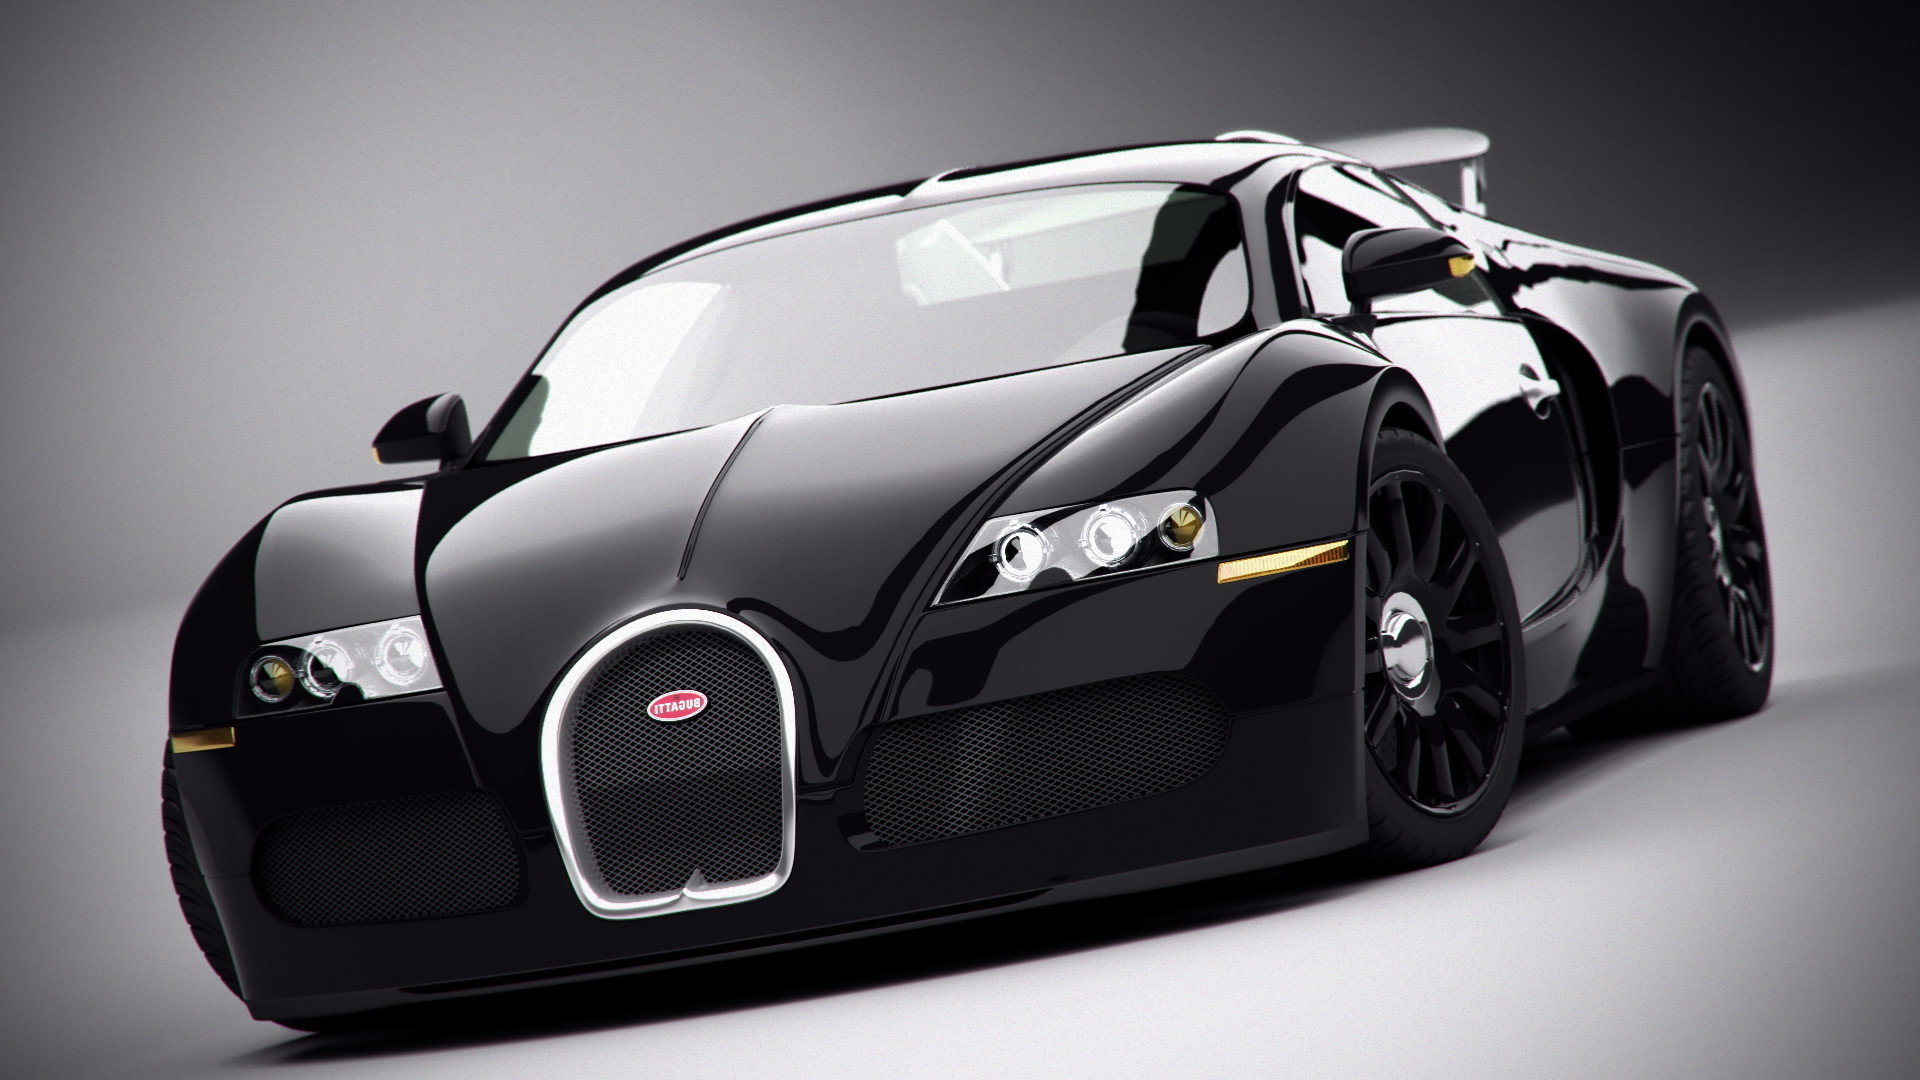 Bugatti Veyron Wallpapers HD Download